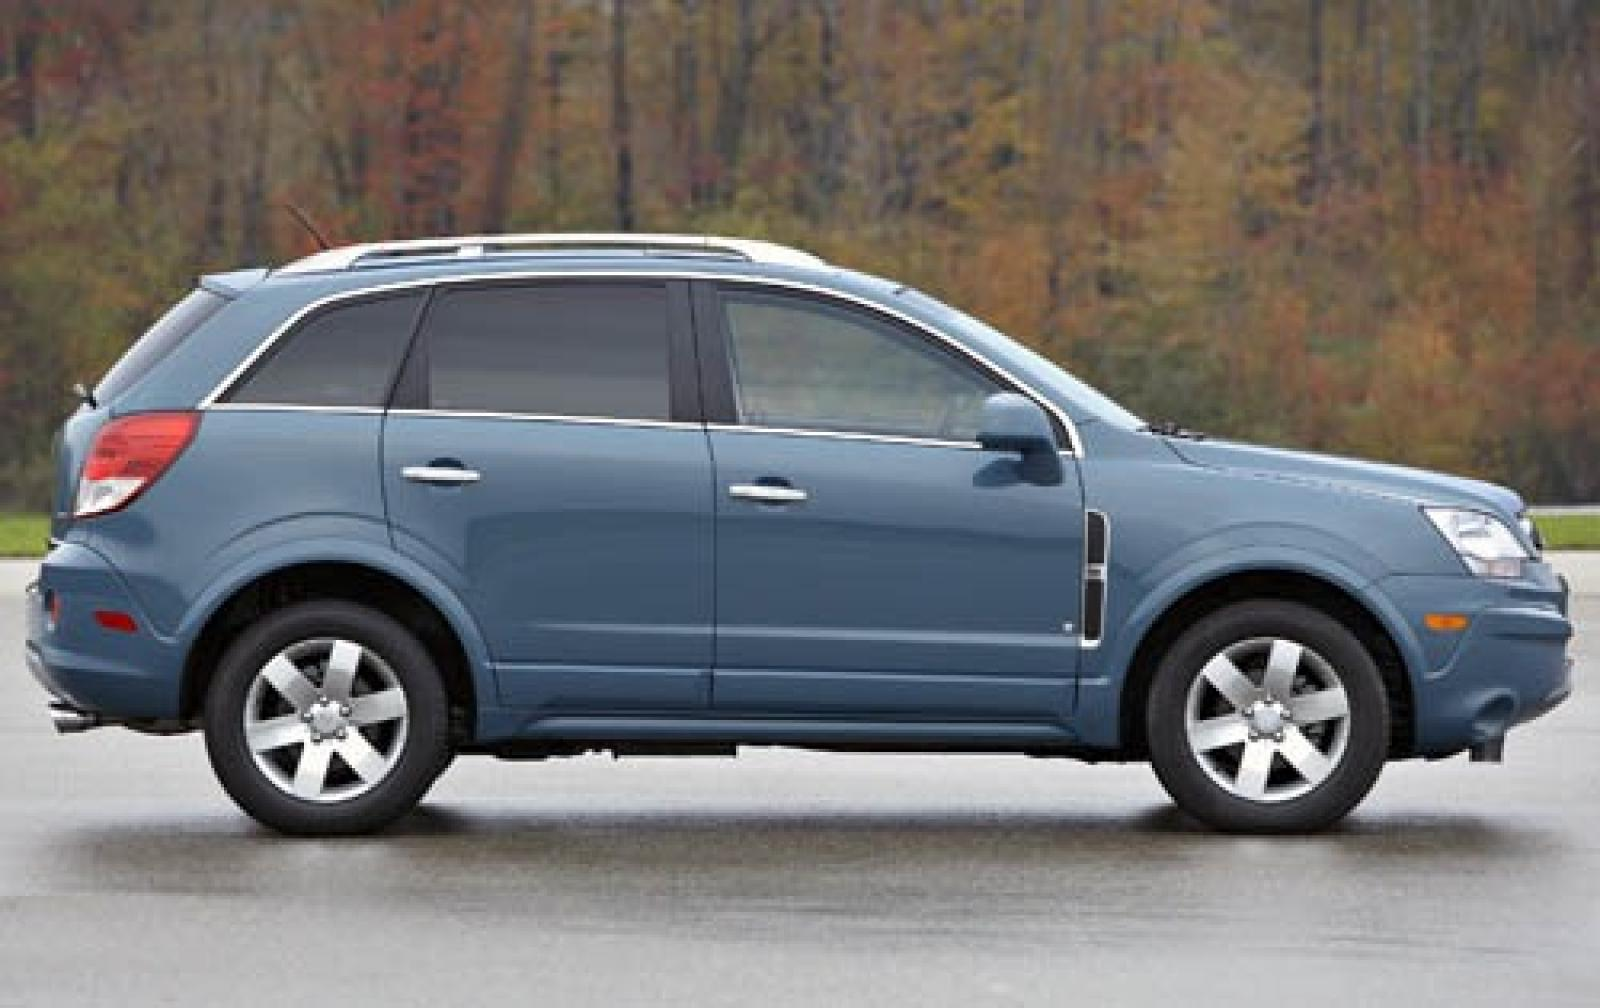 2008 Saturn Vue - Information And Photos